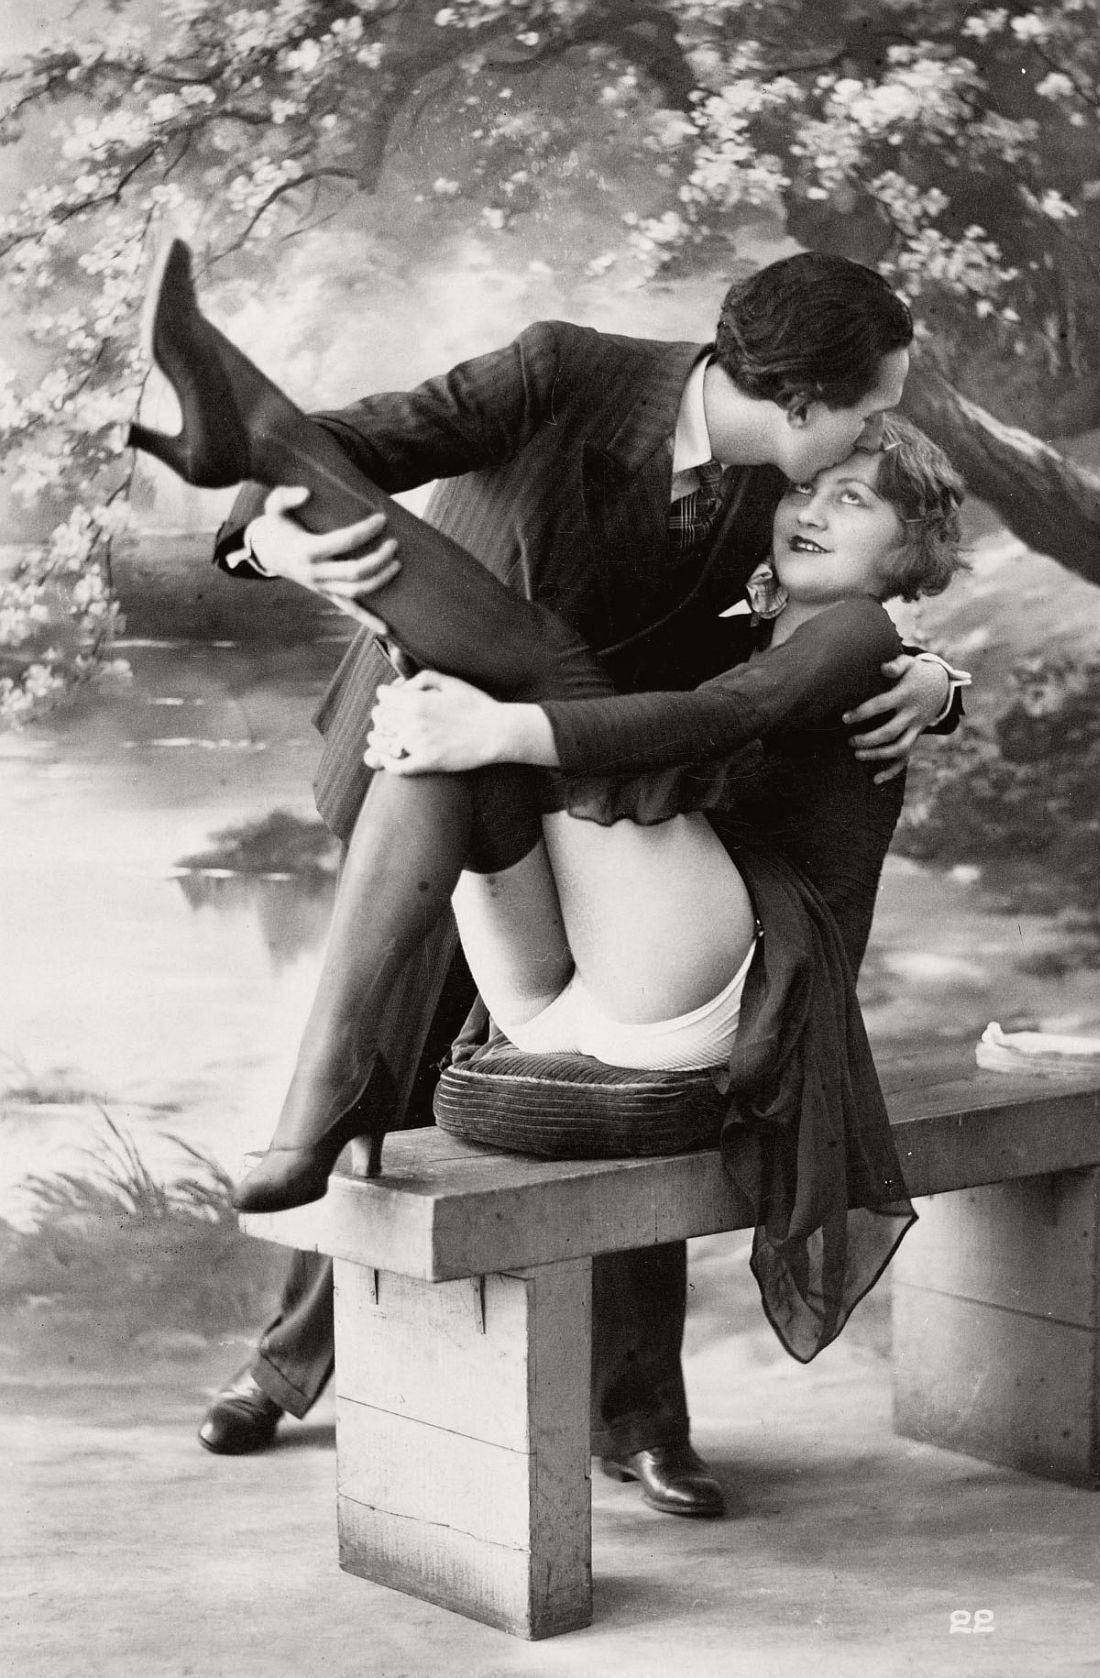 french-erotic-postcards-1920s-04